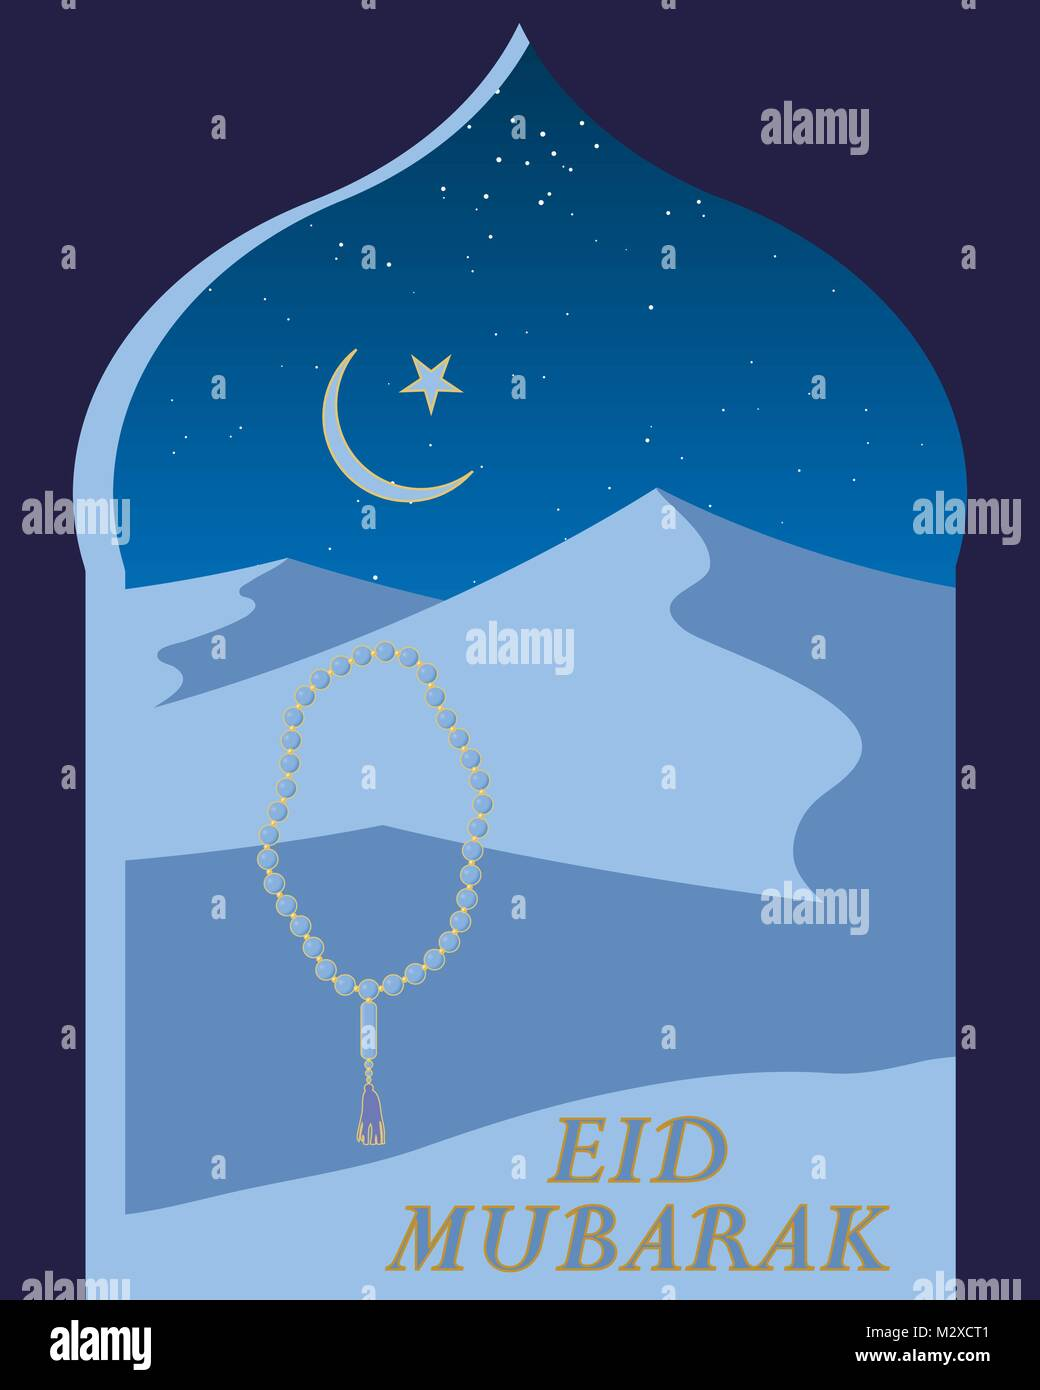 An illustration of an eid festival greeting card with desert sand an illustration of an eid festival greeting card with desert sand dunes and islamic window under a starry sky m4hsunfo